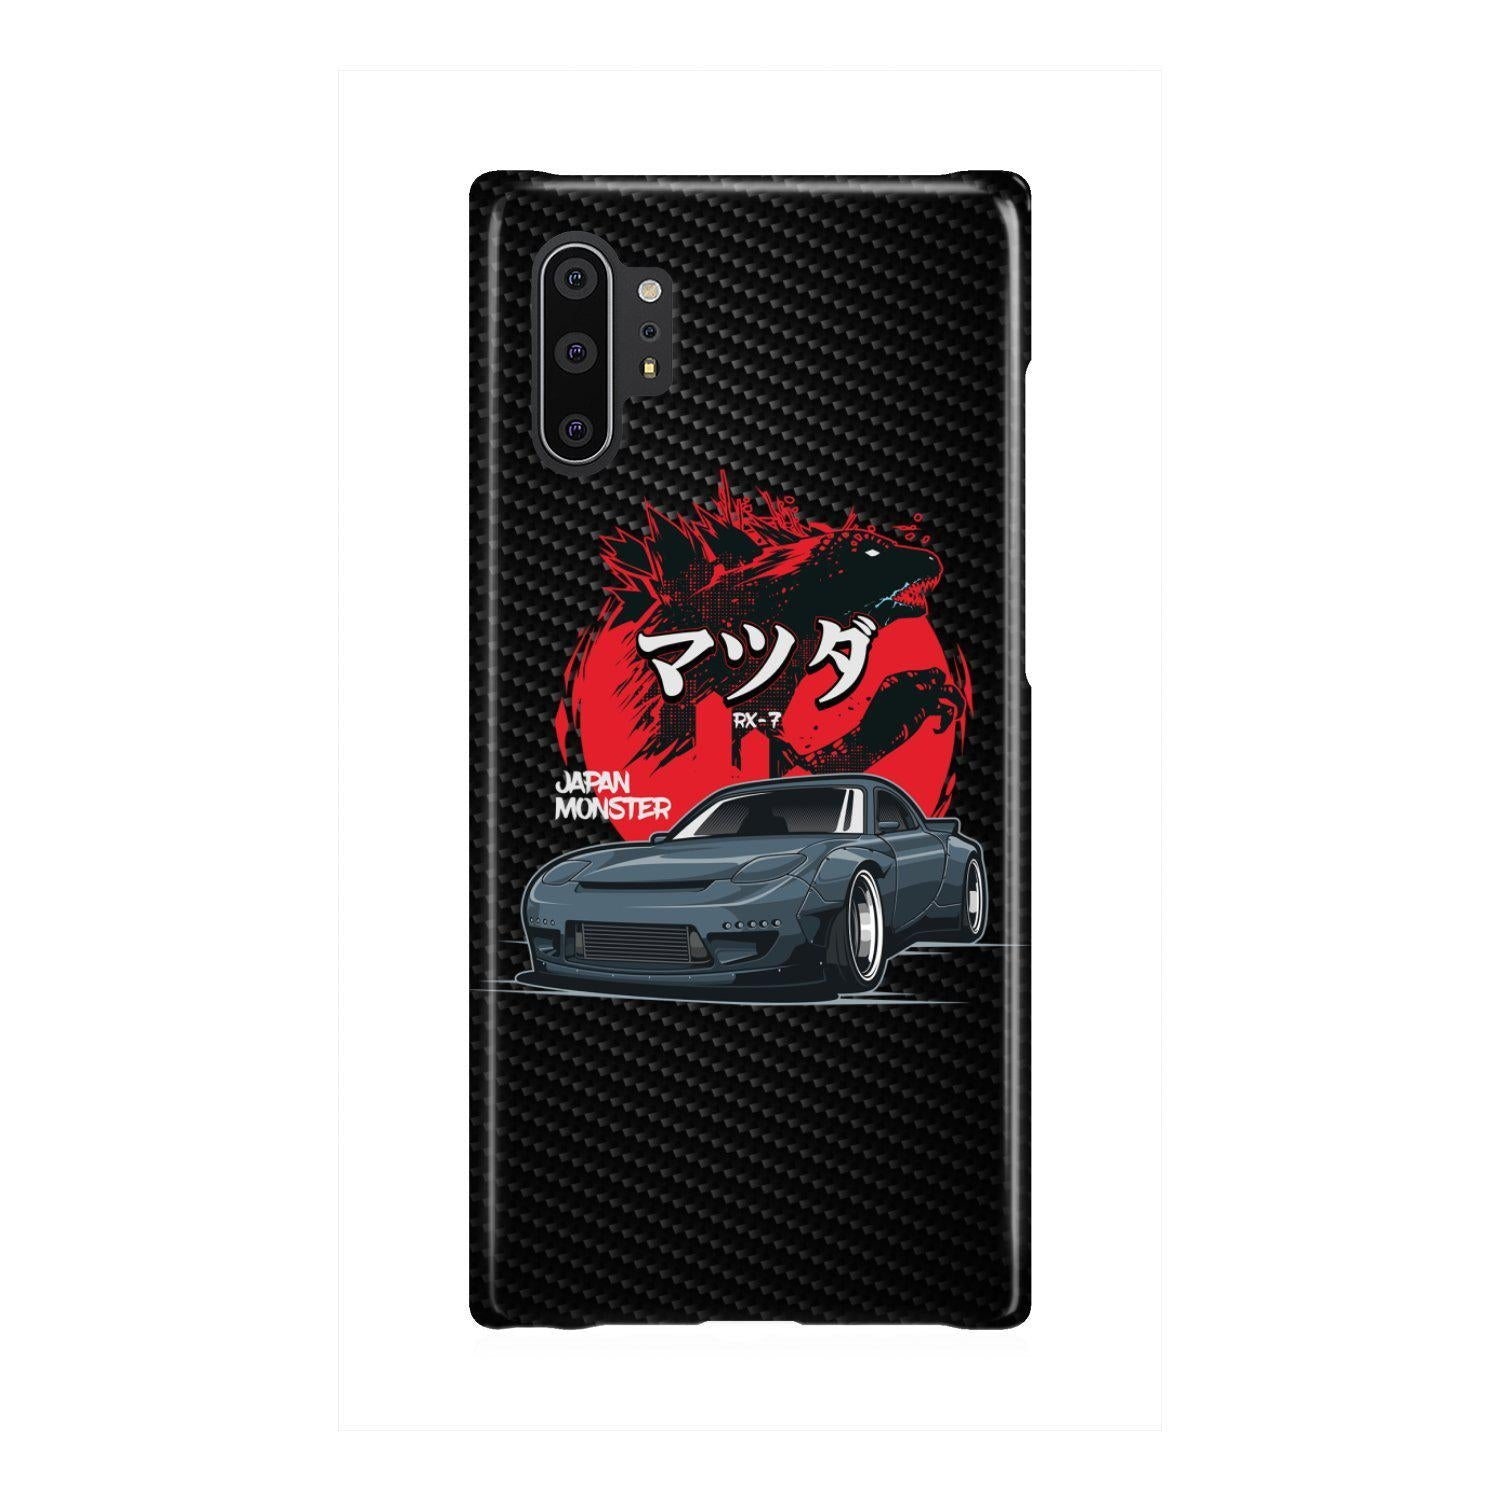 Mazda RX-7 Japan Monster - Snap Case - for Apple iPhone Models - TunerLifestyle